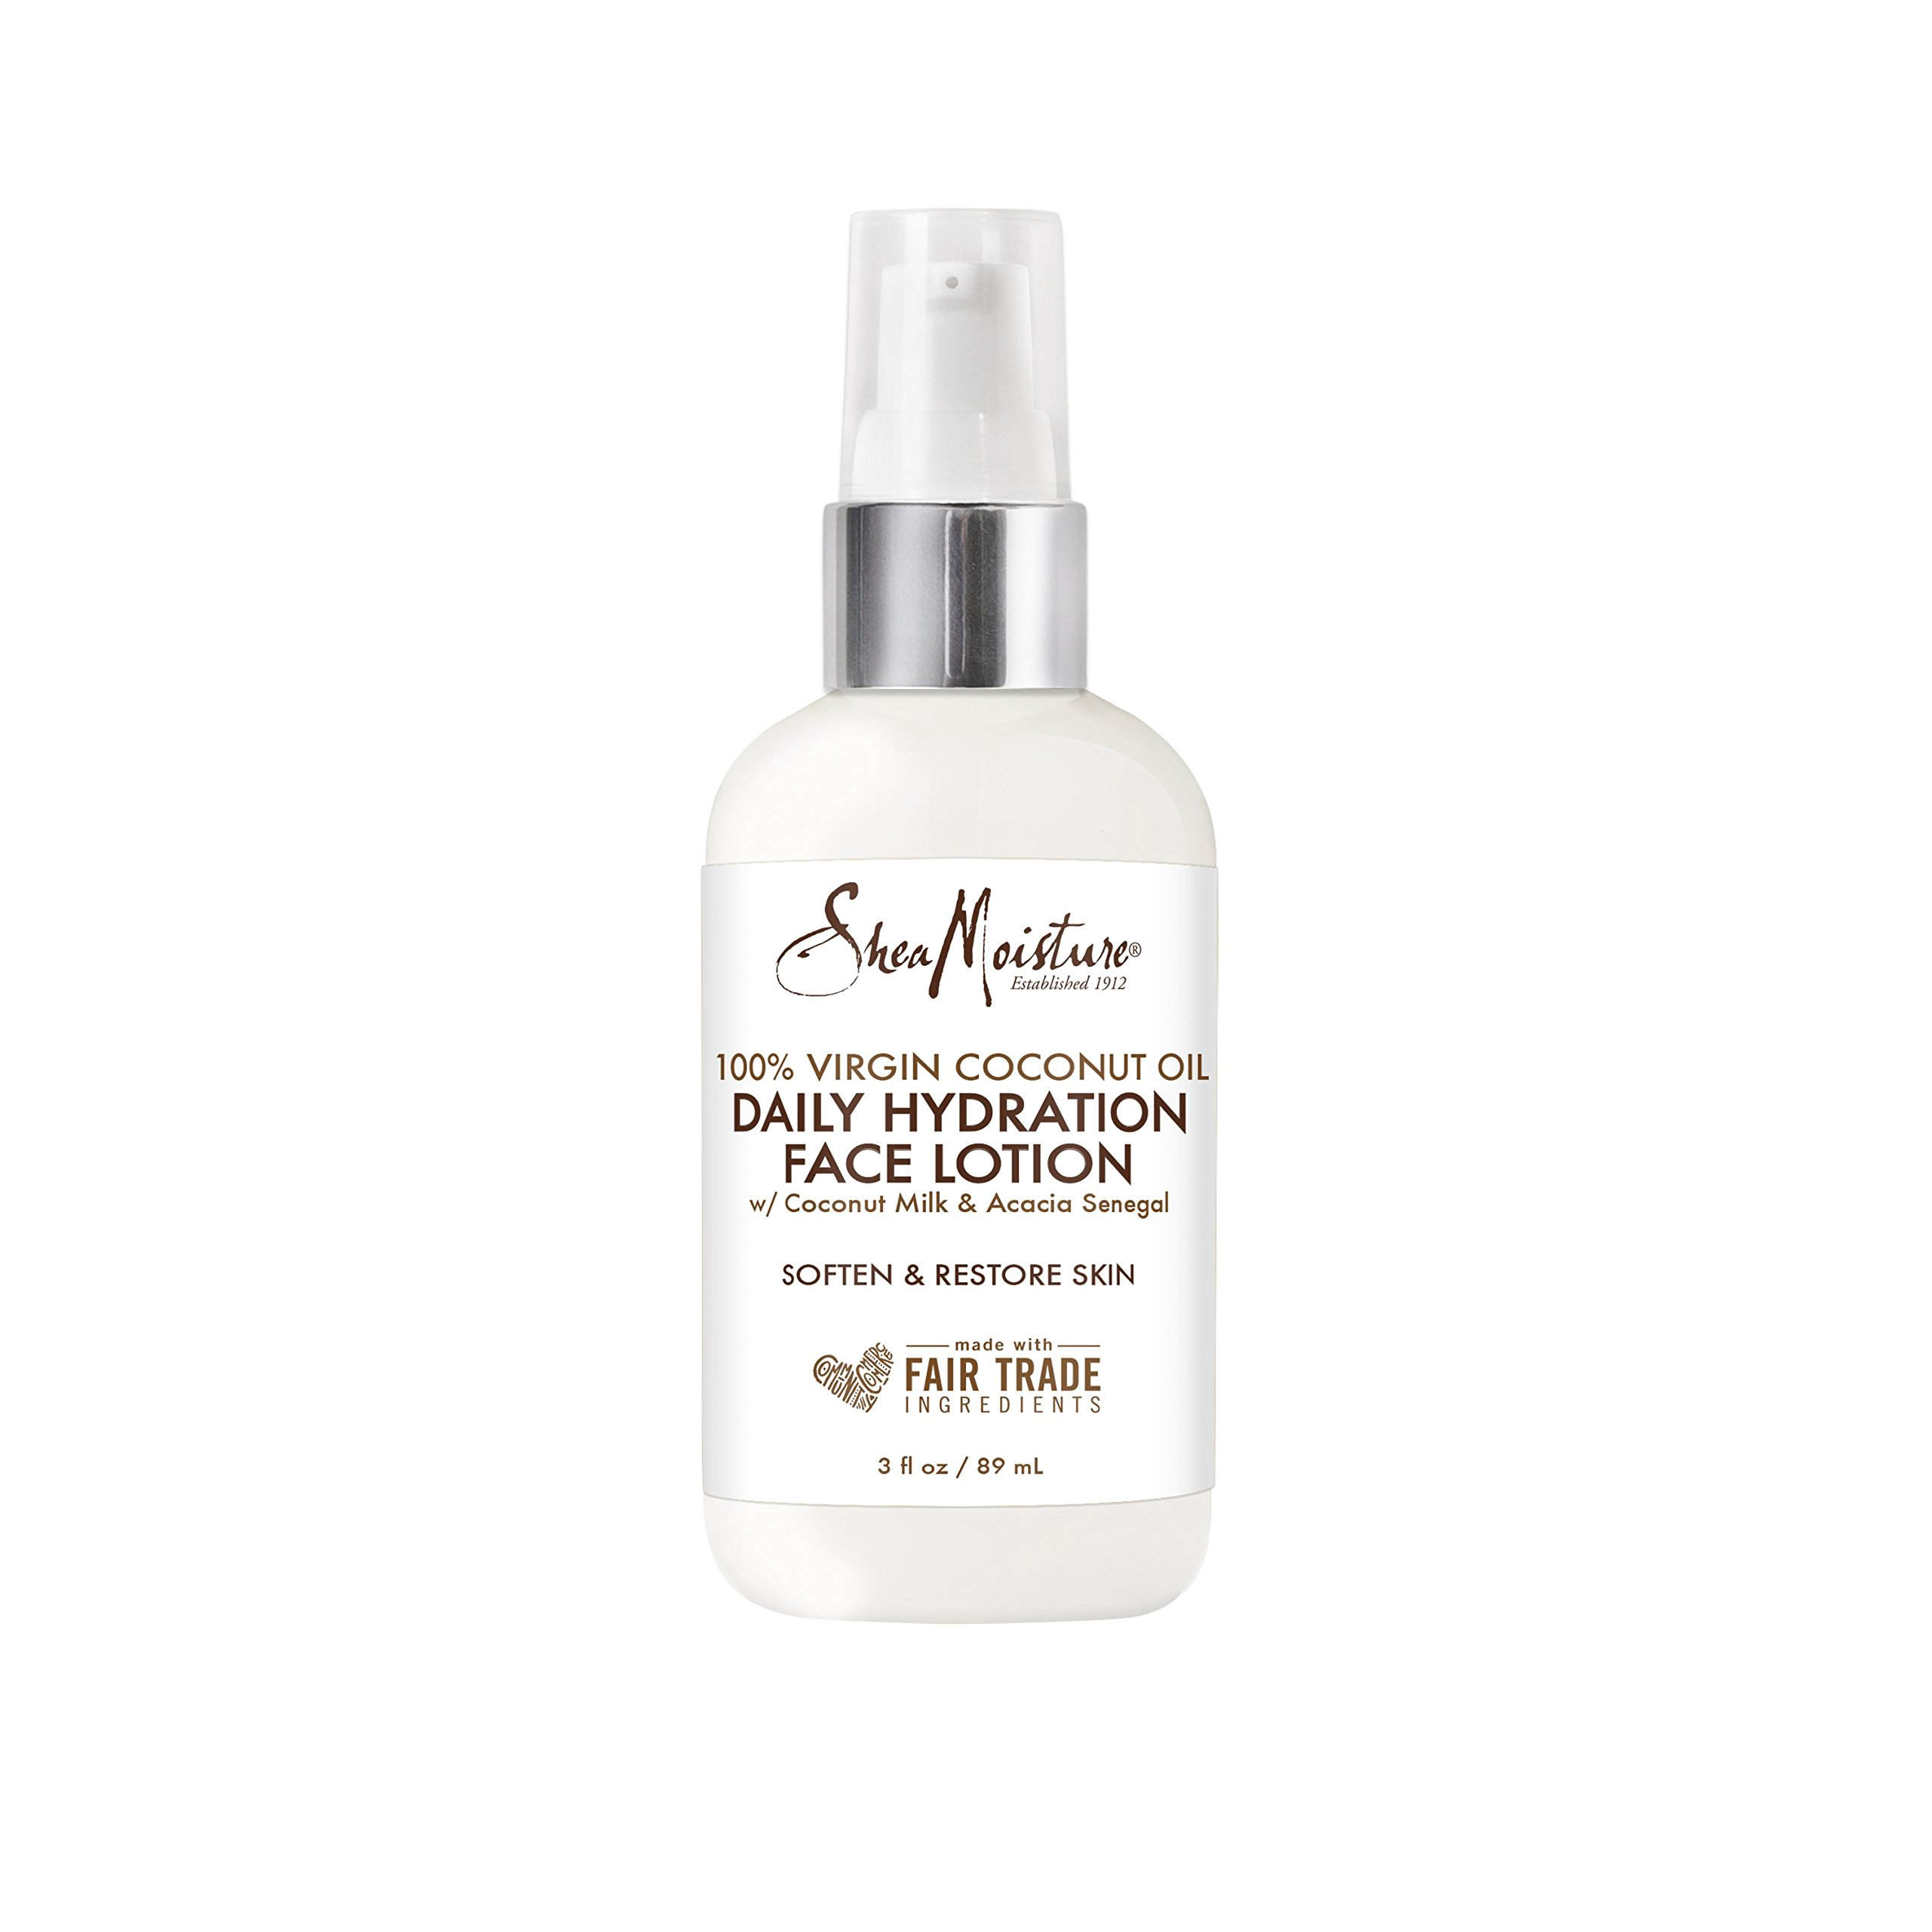 Sheamoisture Daily Hydration Face Lotion for All Skin Types 100% Virgin Coconut Oil for Daily Hydration 3 oz